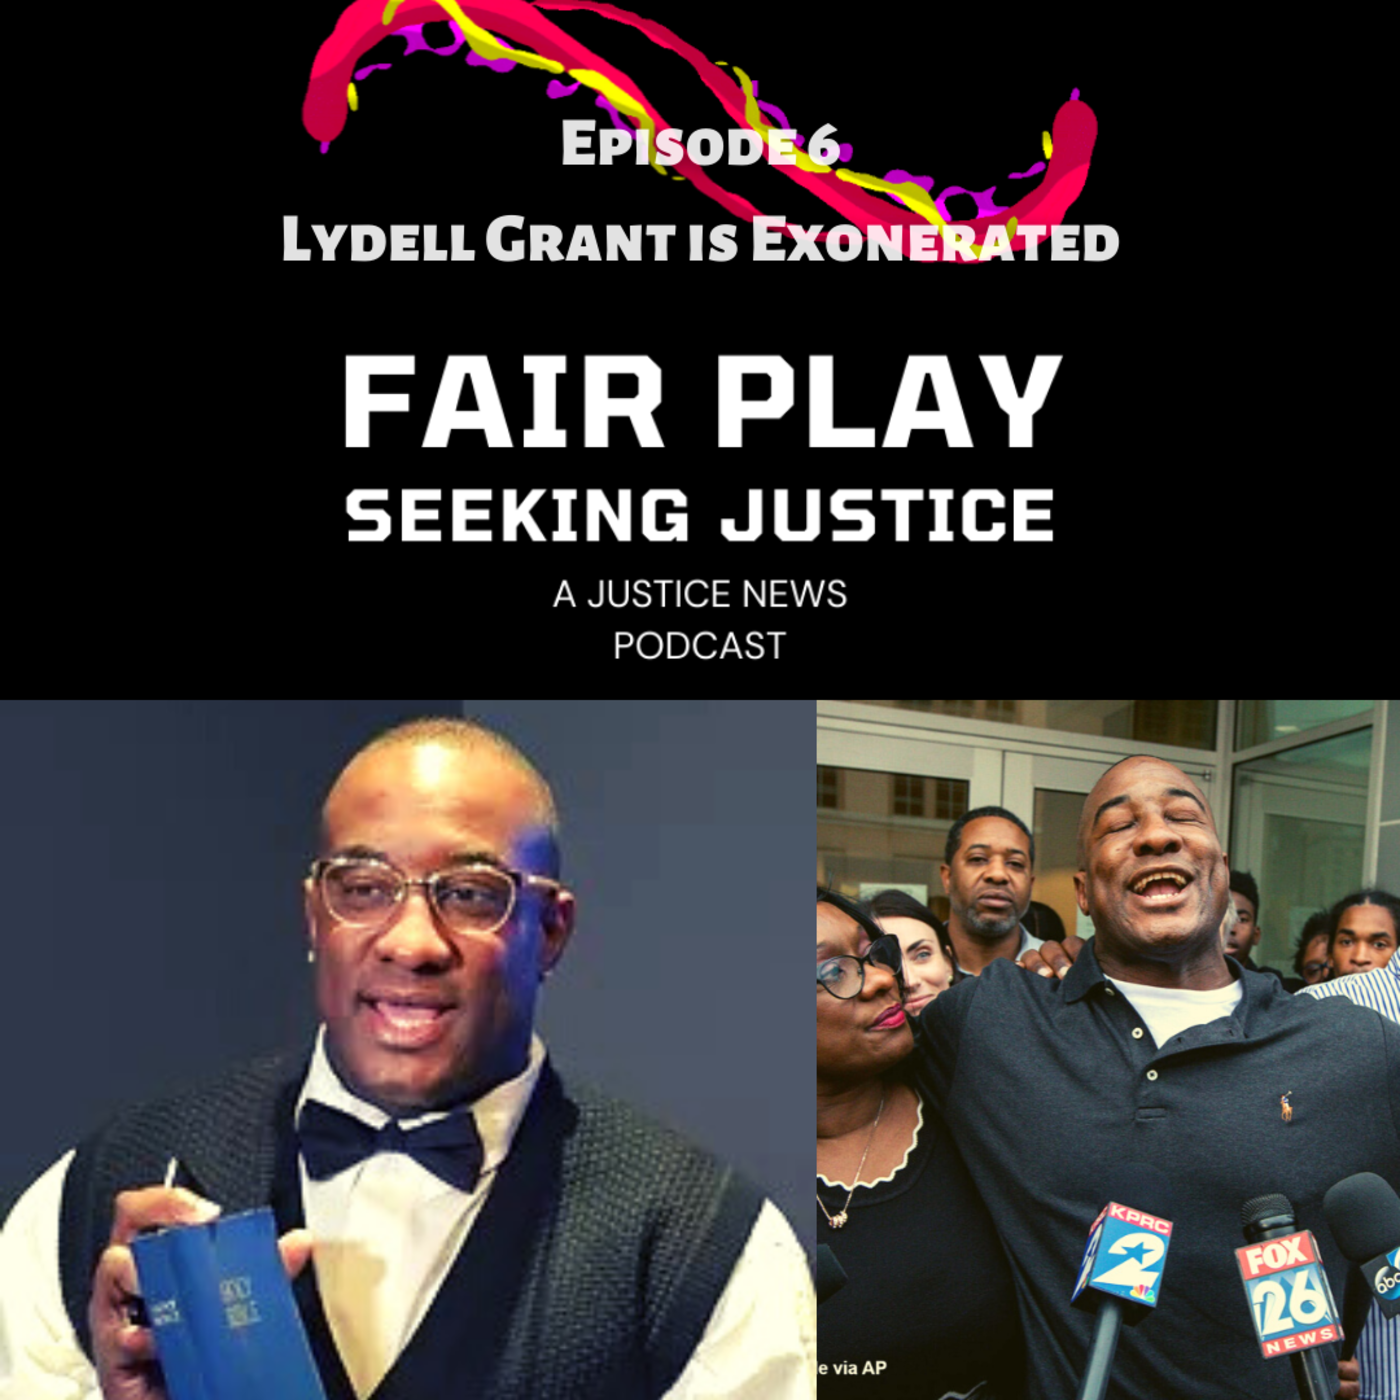 FairPlay EP6 | Lydell Grant Is Exonerated